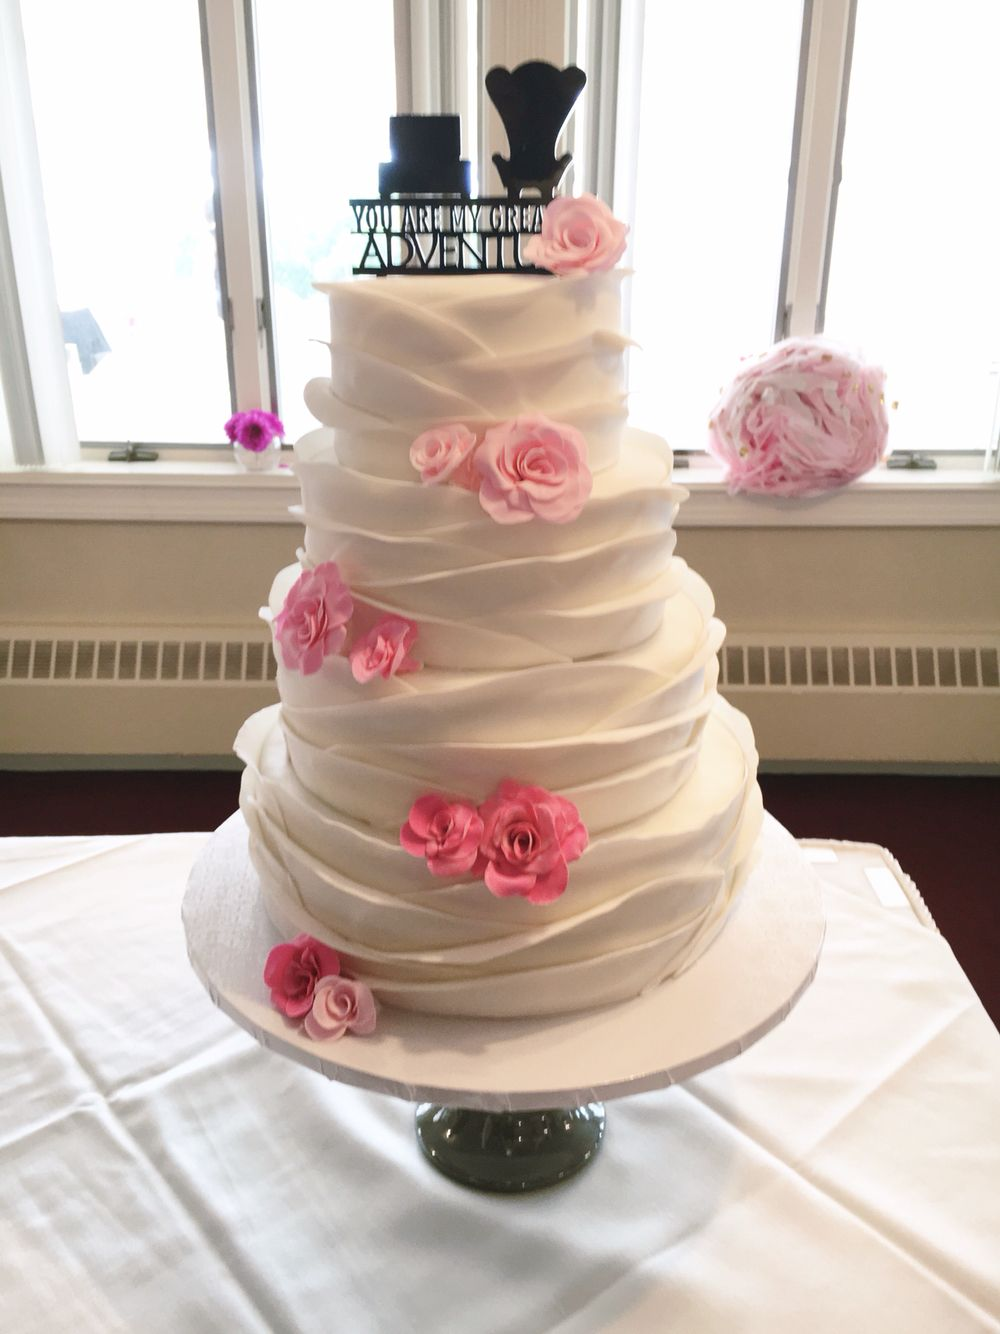 White Ruffle Wedding Cake With Ombre Pink Sugar Roses By Amy Hart